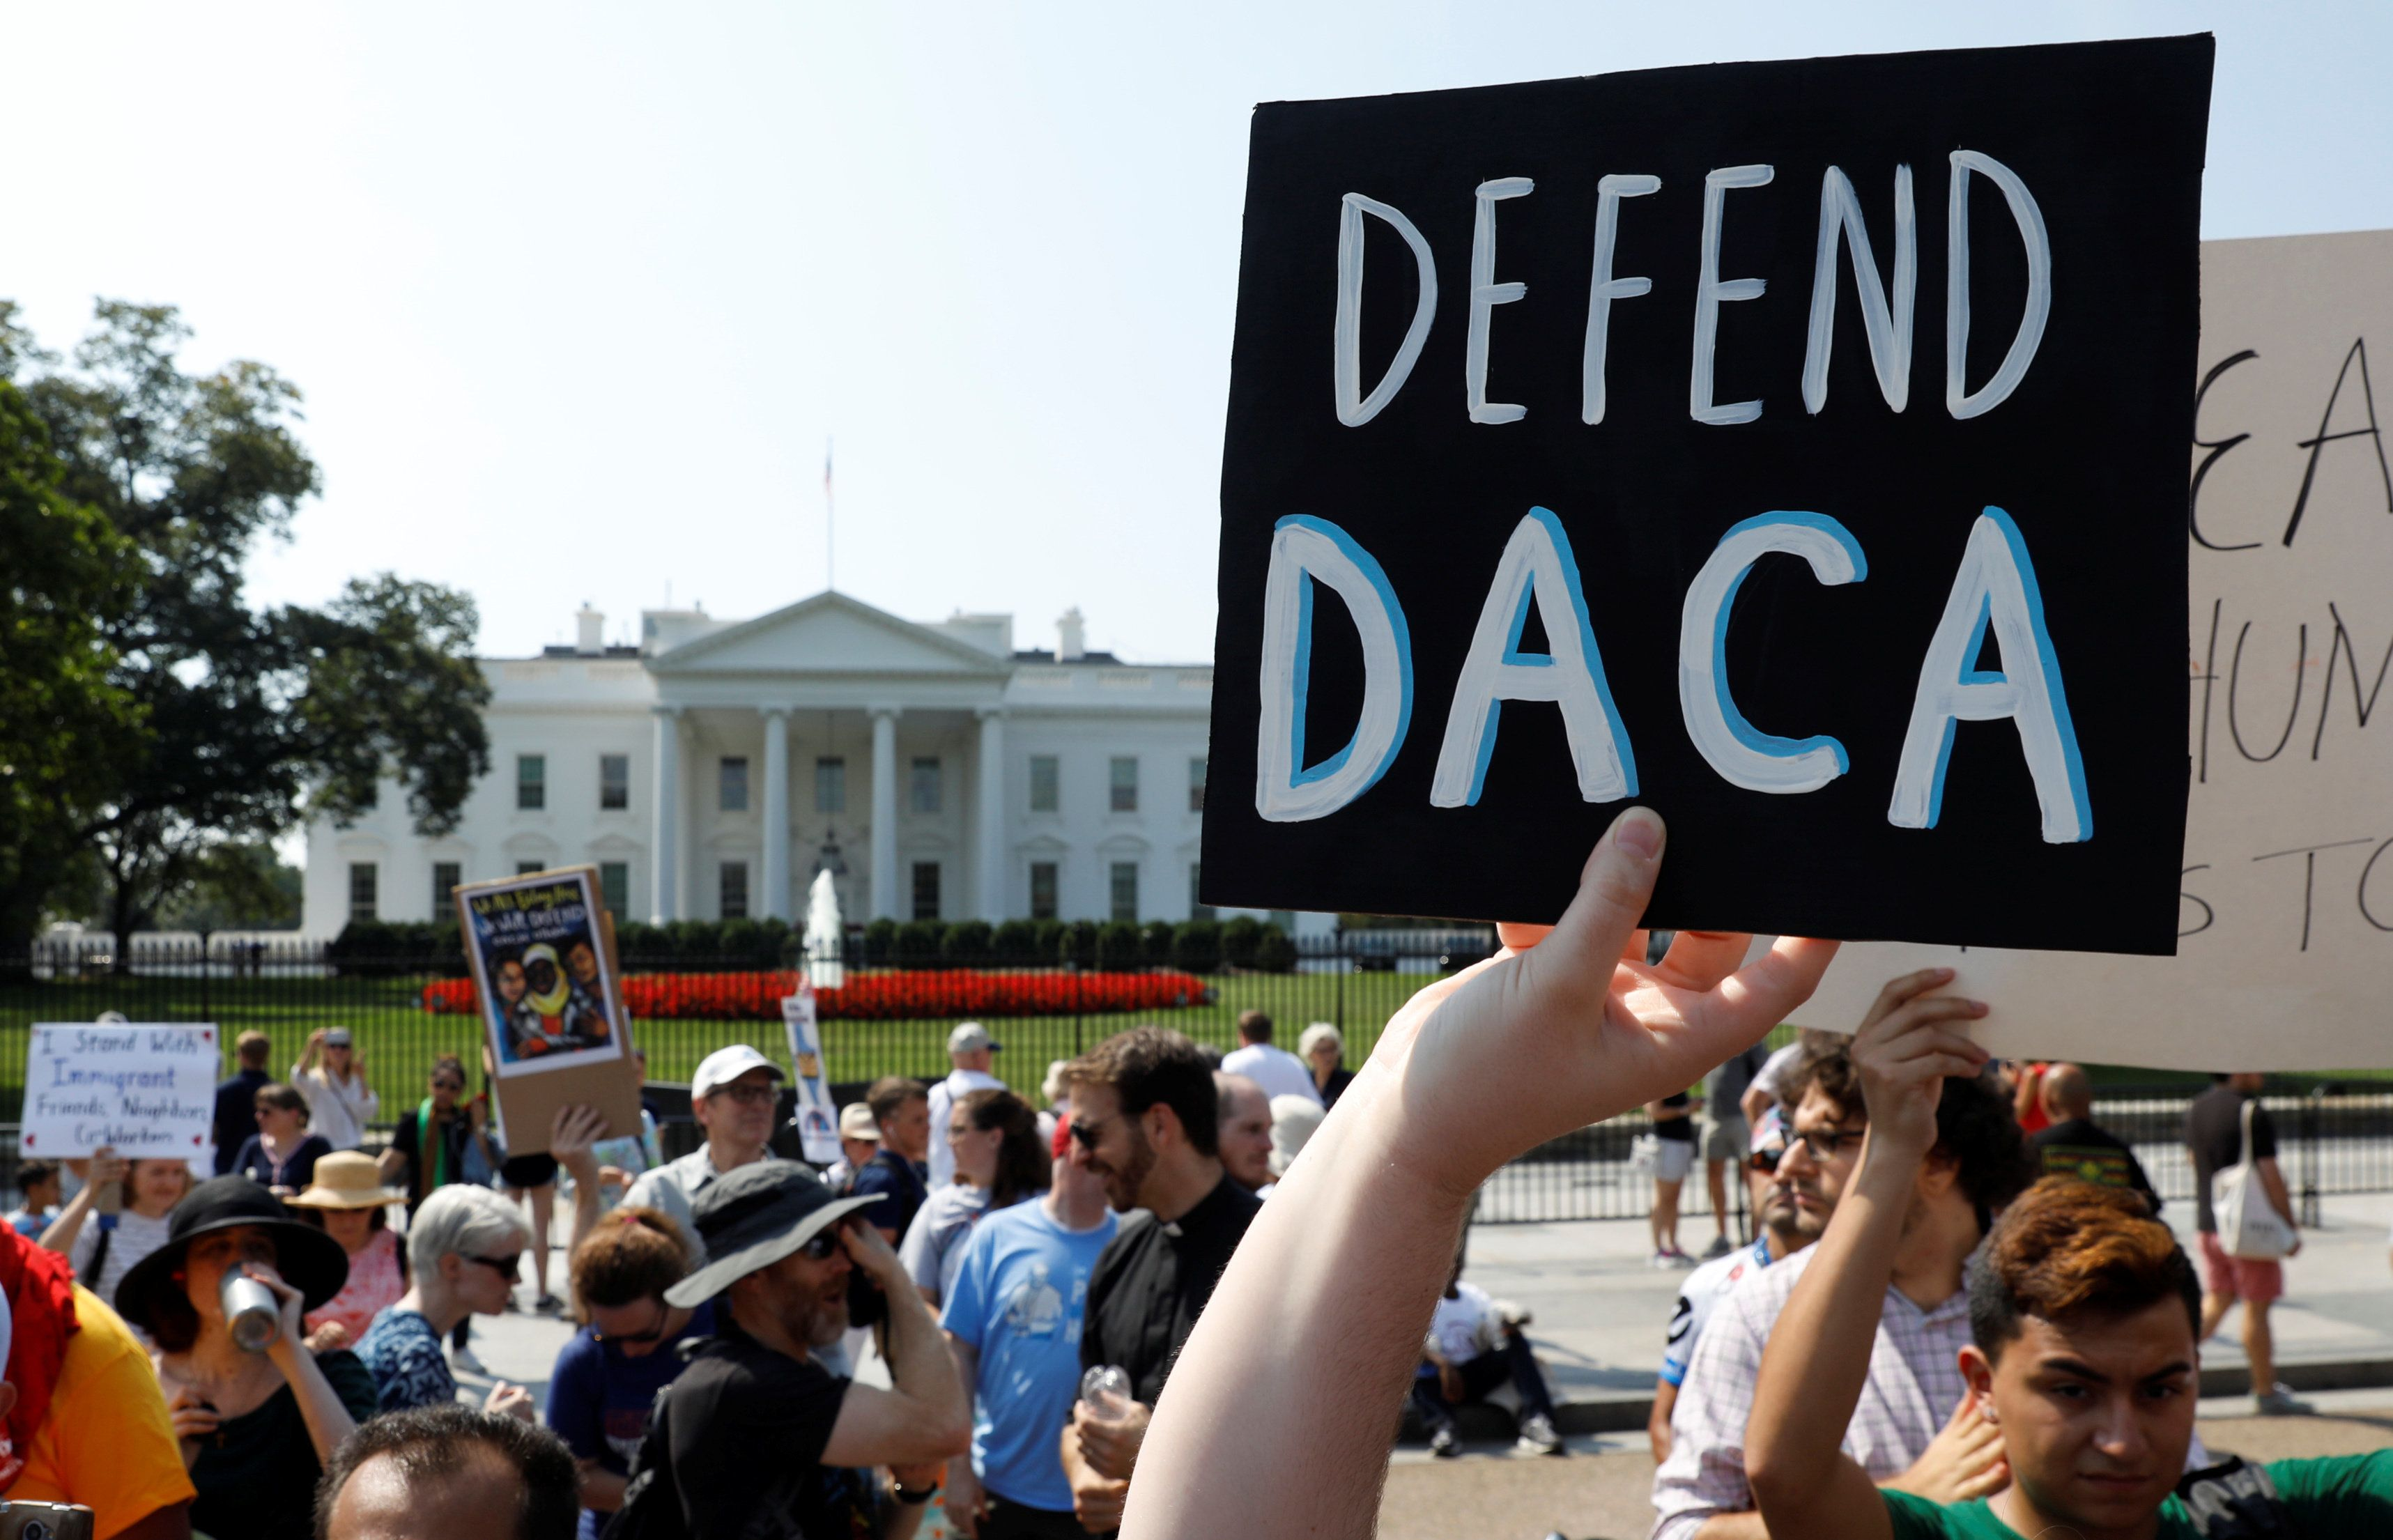 Demonstrators protest in front of the White House after the Trump administration today scrapped the Deferred Action for Childhood Arrivals (DACA), a program that protects from deportation almost 800,000 young men and women who were brought into the U.S. illegally as children, in Washington, U.S., September 5, 2017. REUTERS/Kevin Lamarque     TPX IMAGES OF THE DAY